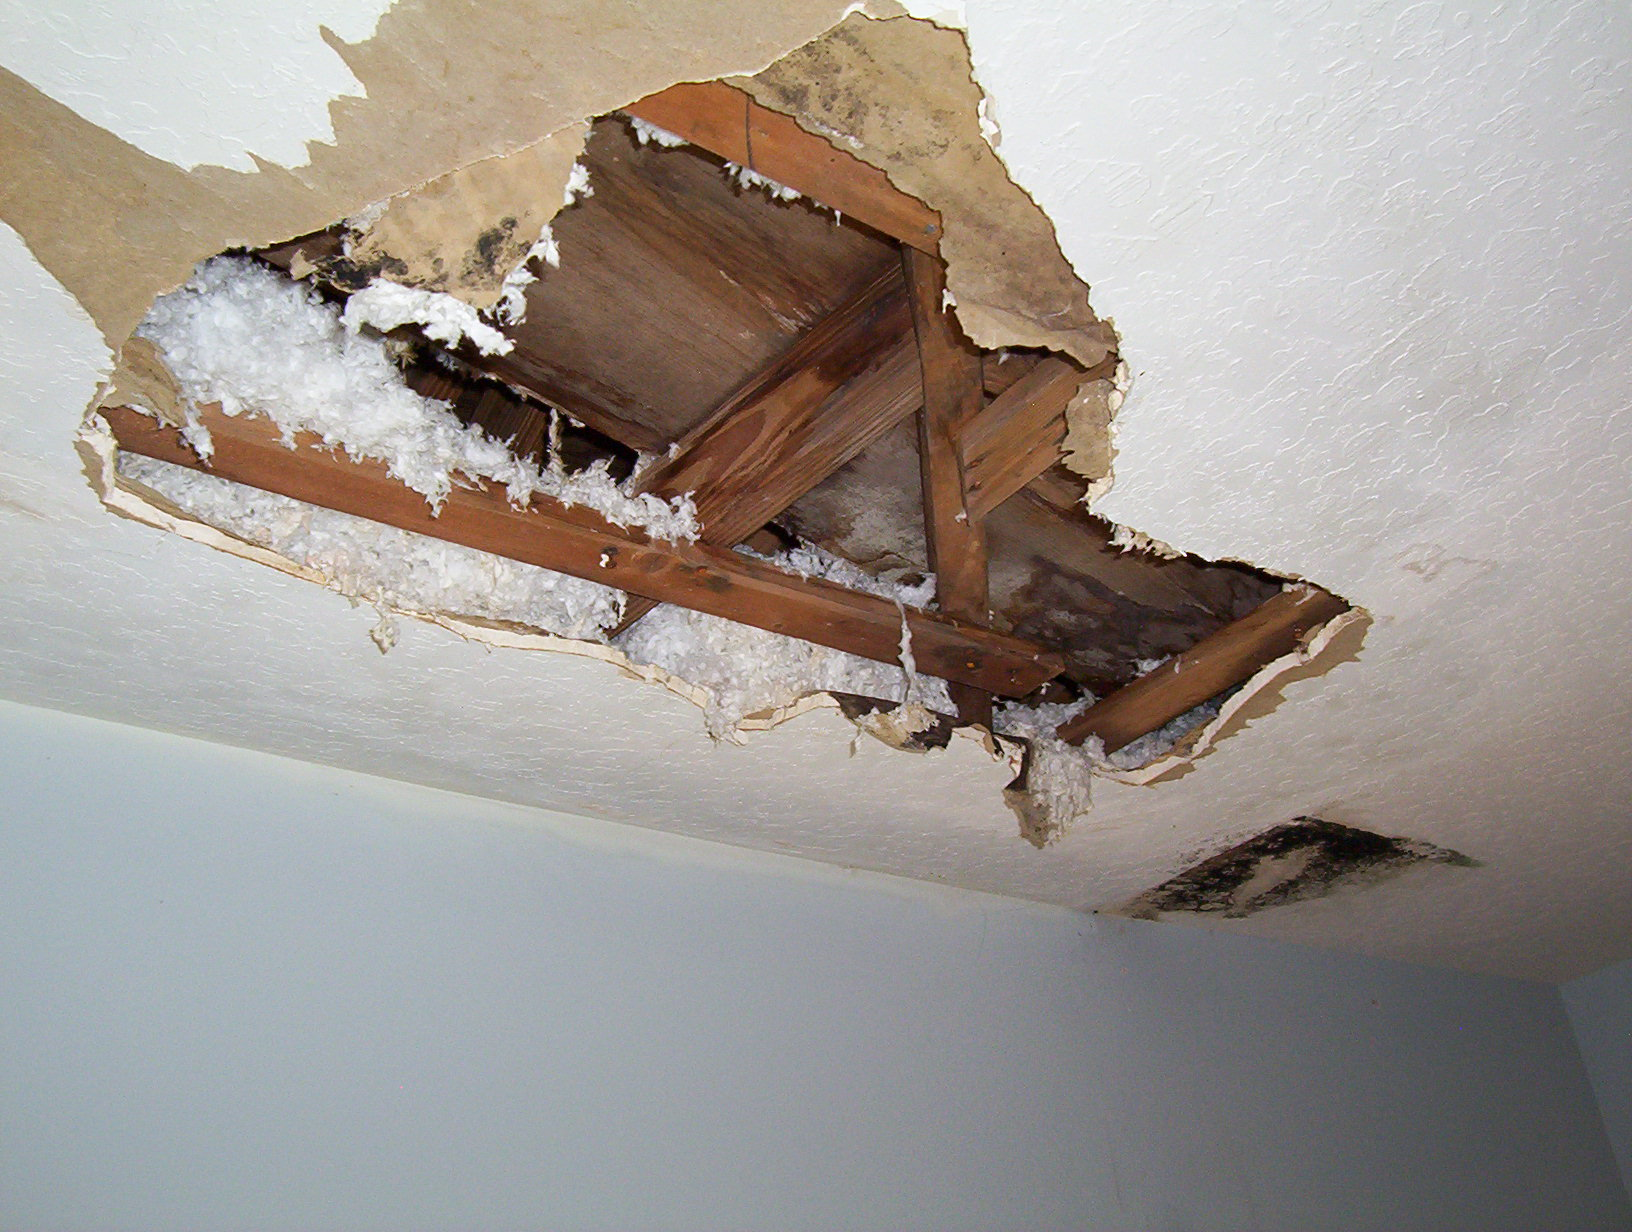 Water Infiltration Results In Home Damage Djs Associates